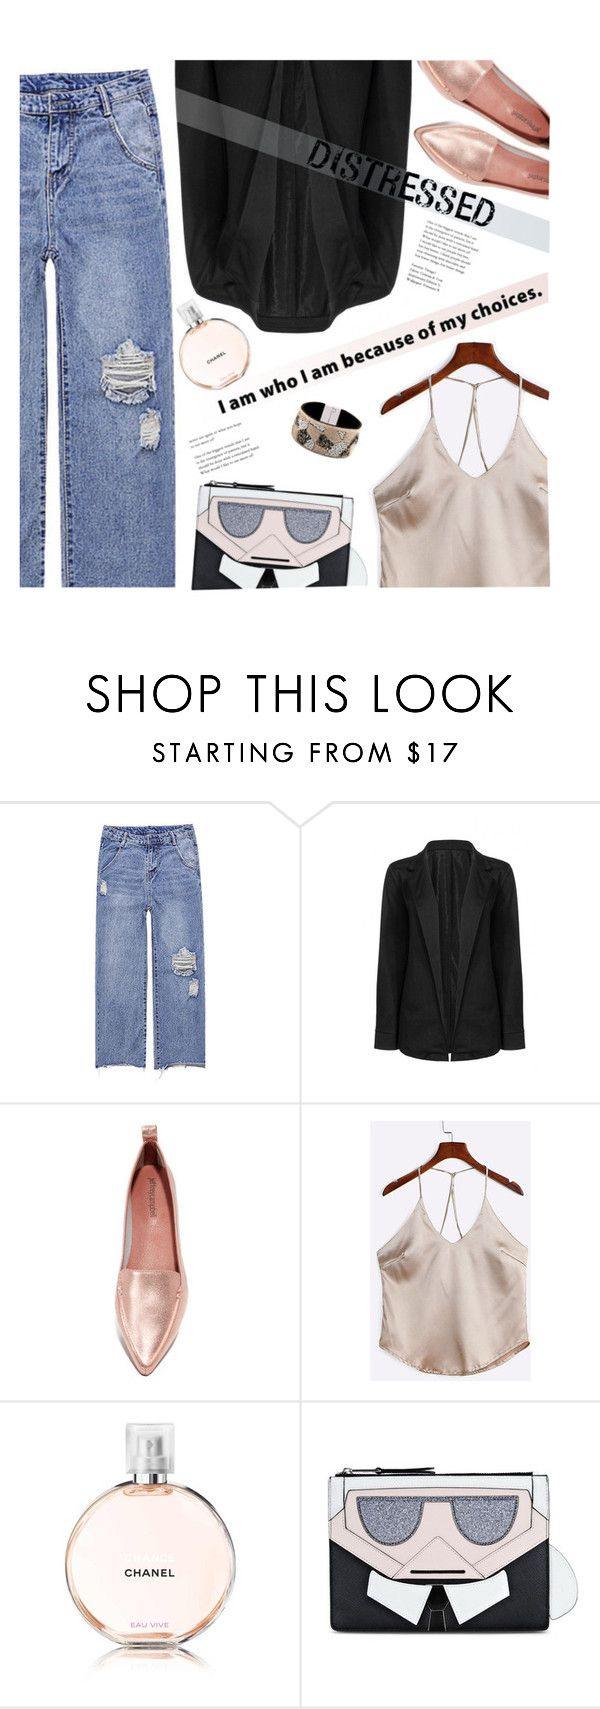 """True Blue: Distressed Denim"" by meyli-meyli ❤ liked on Polyvore featuring Jeffrey Campbell, Karl Lagerfeld and distresseddenim"